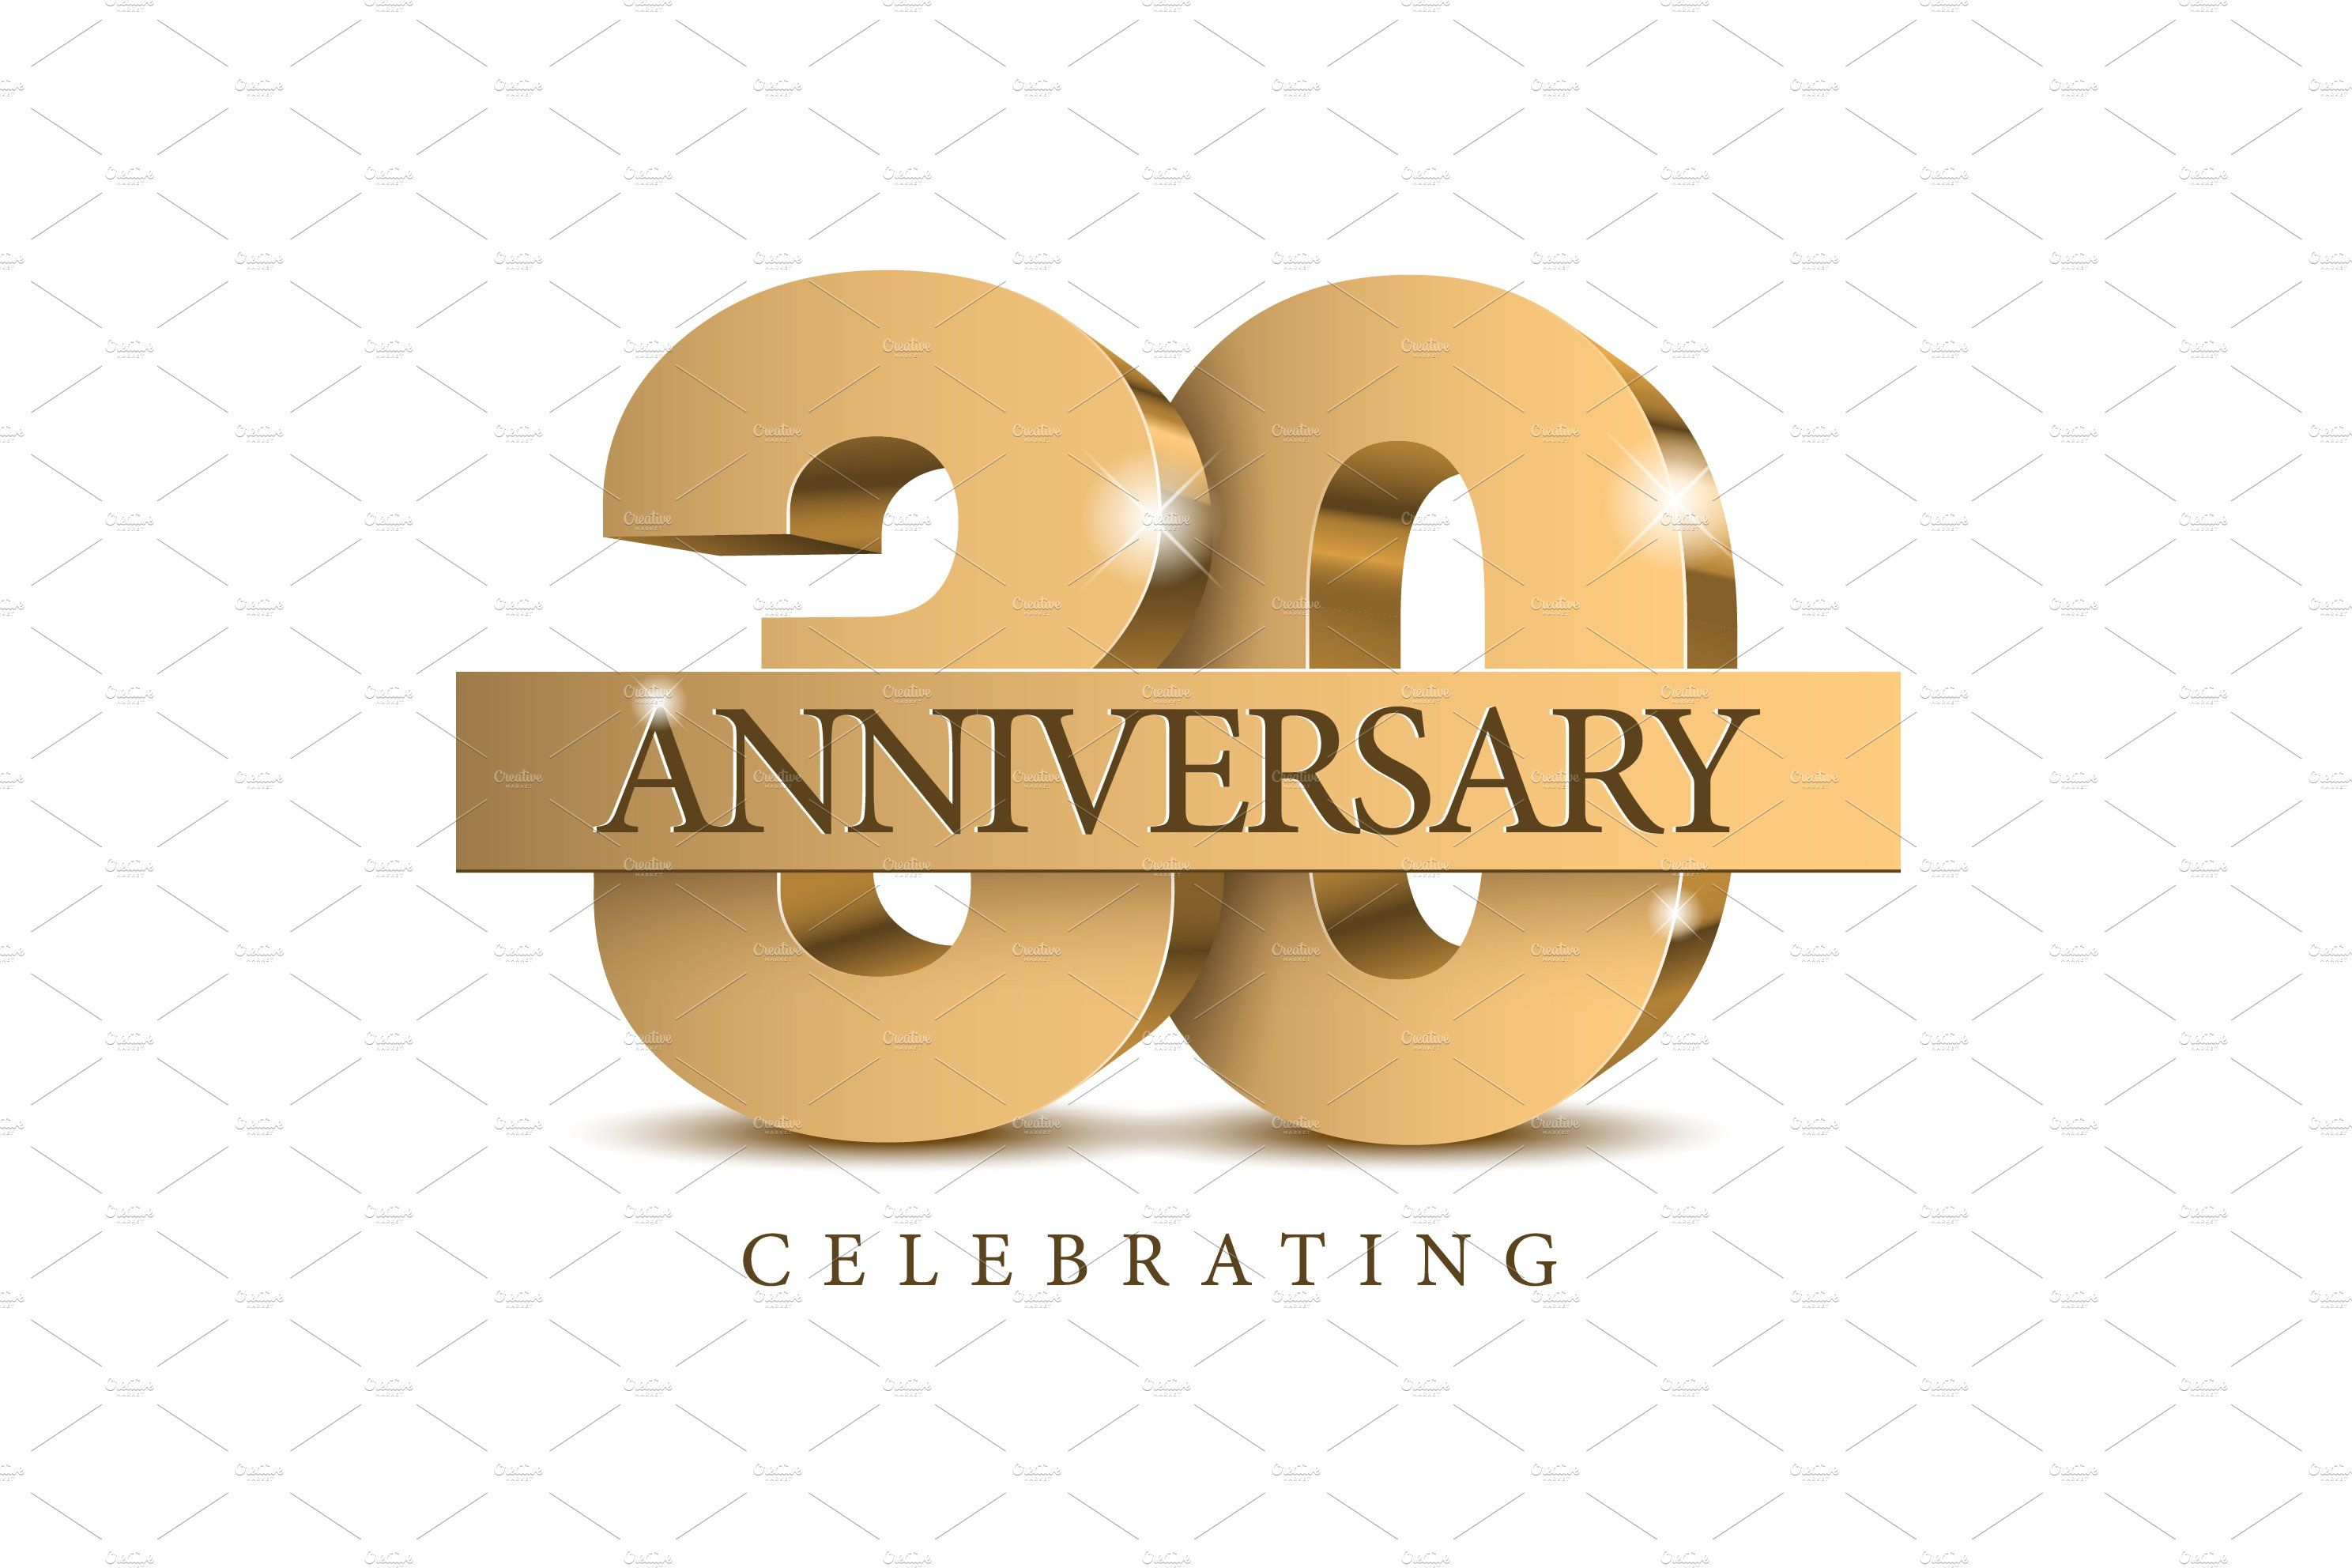 Anniversary 30 gold 3d numbers in 2020 anniversary